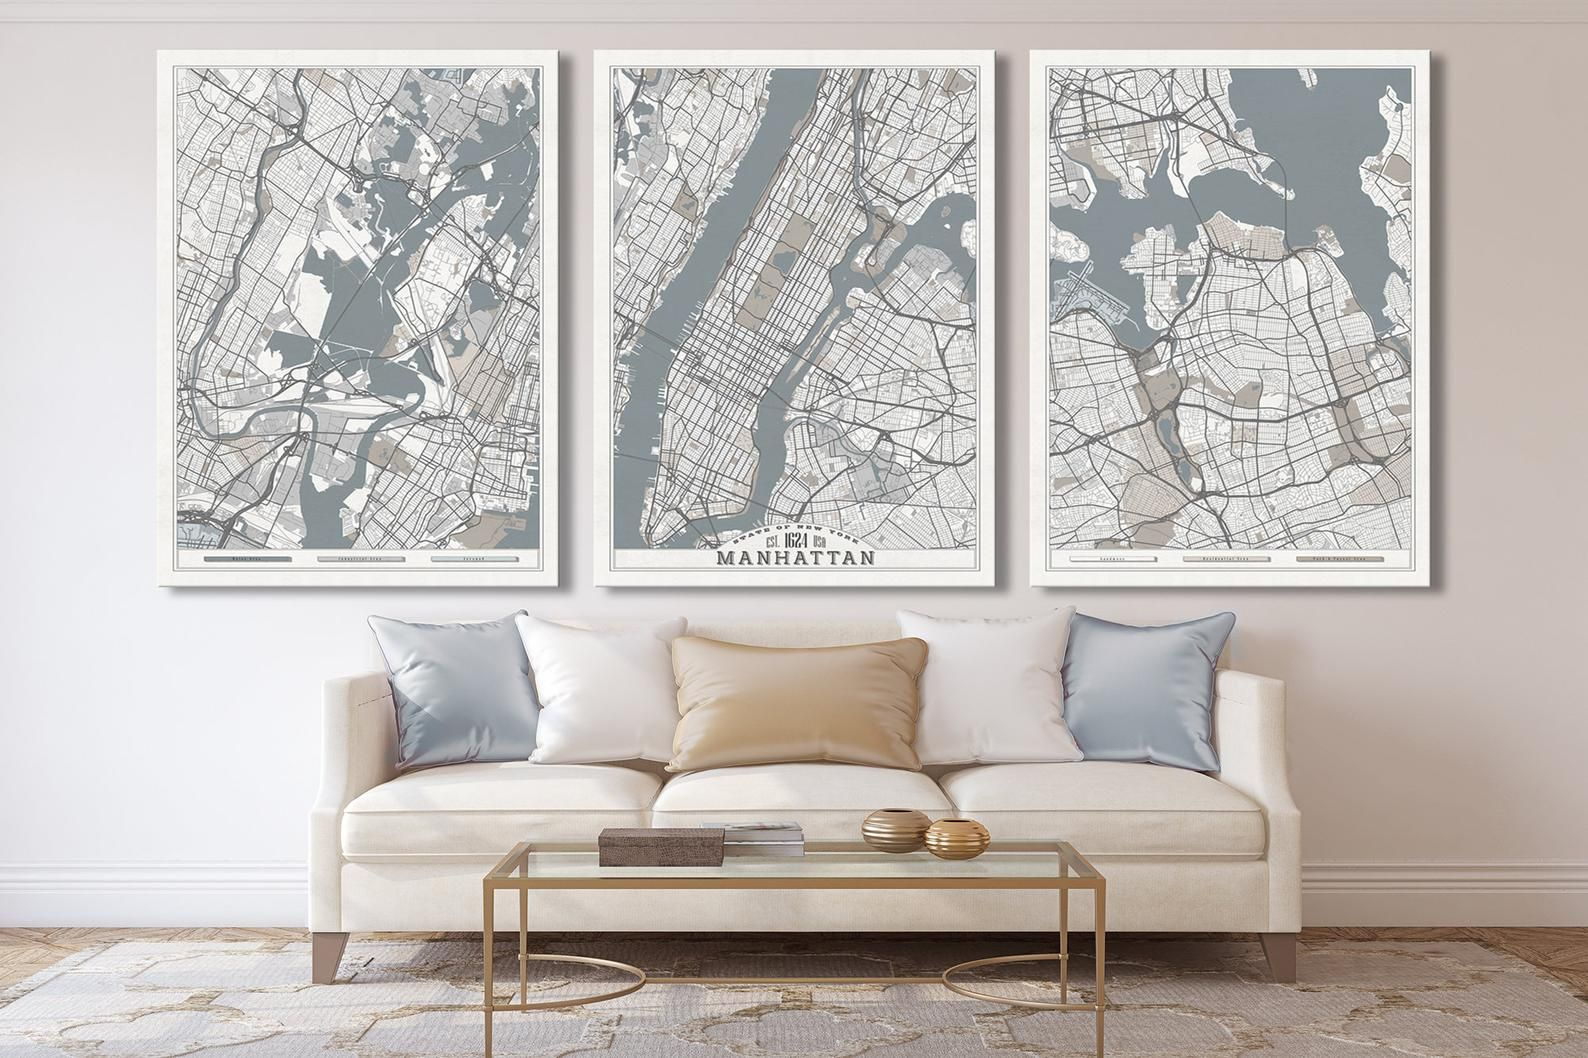 Manhattan Nyc Canvas Print Large Wall Art Chicago New York Etsy Oversized Wall Art Large Wall Art Extra Large Wall Art